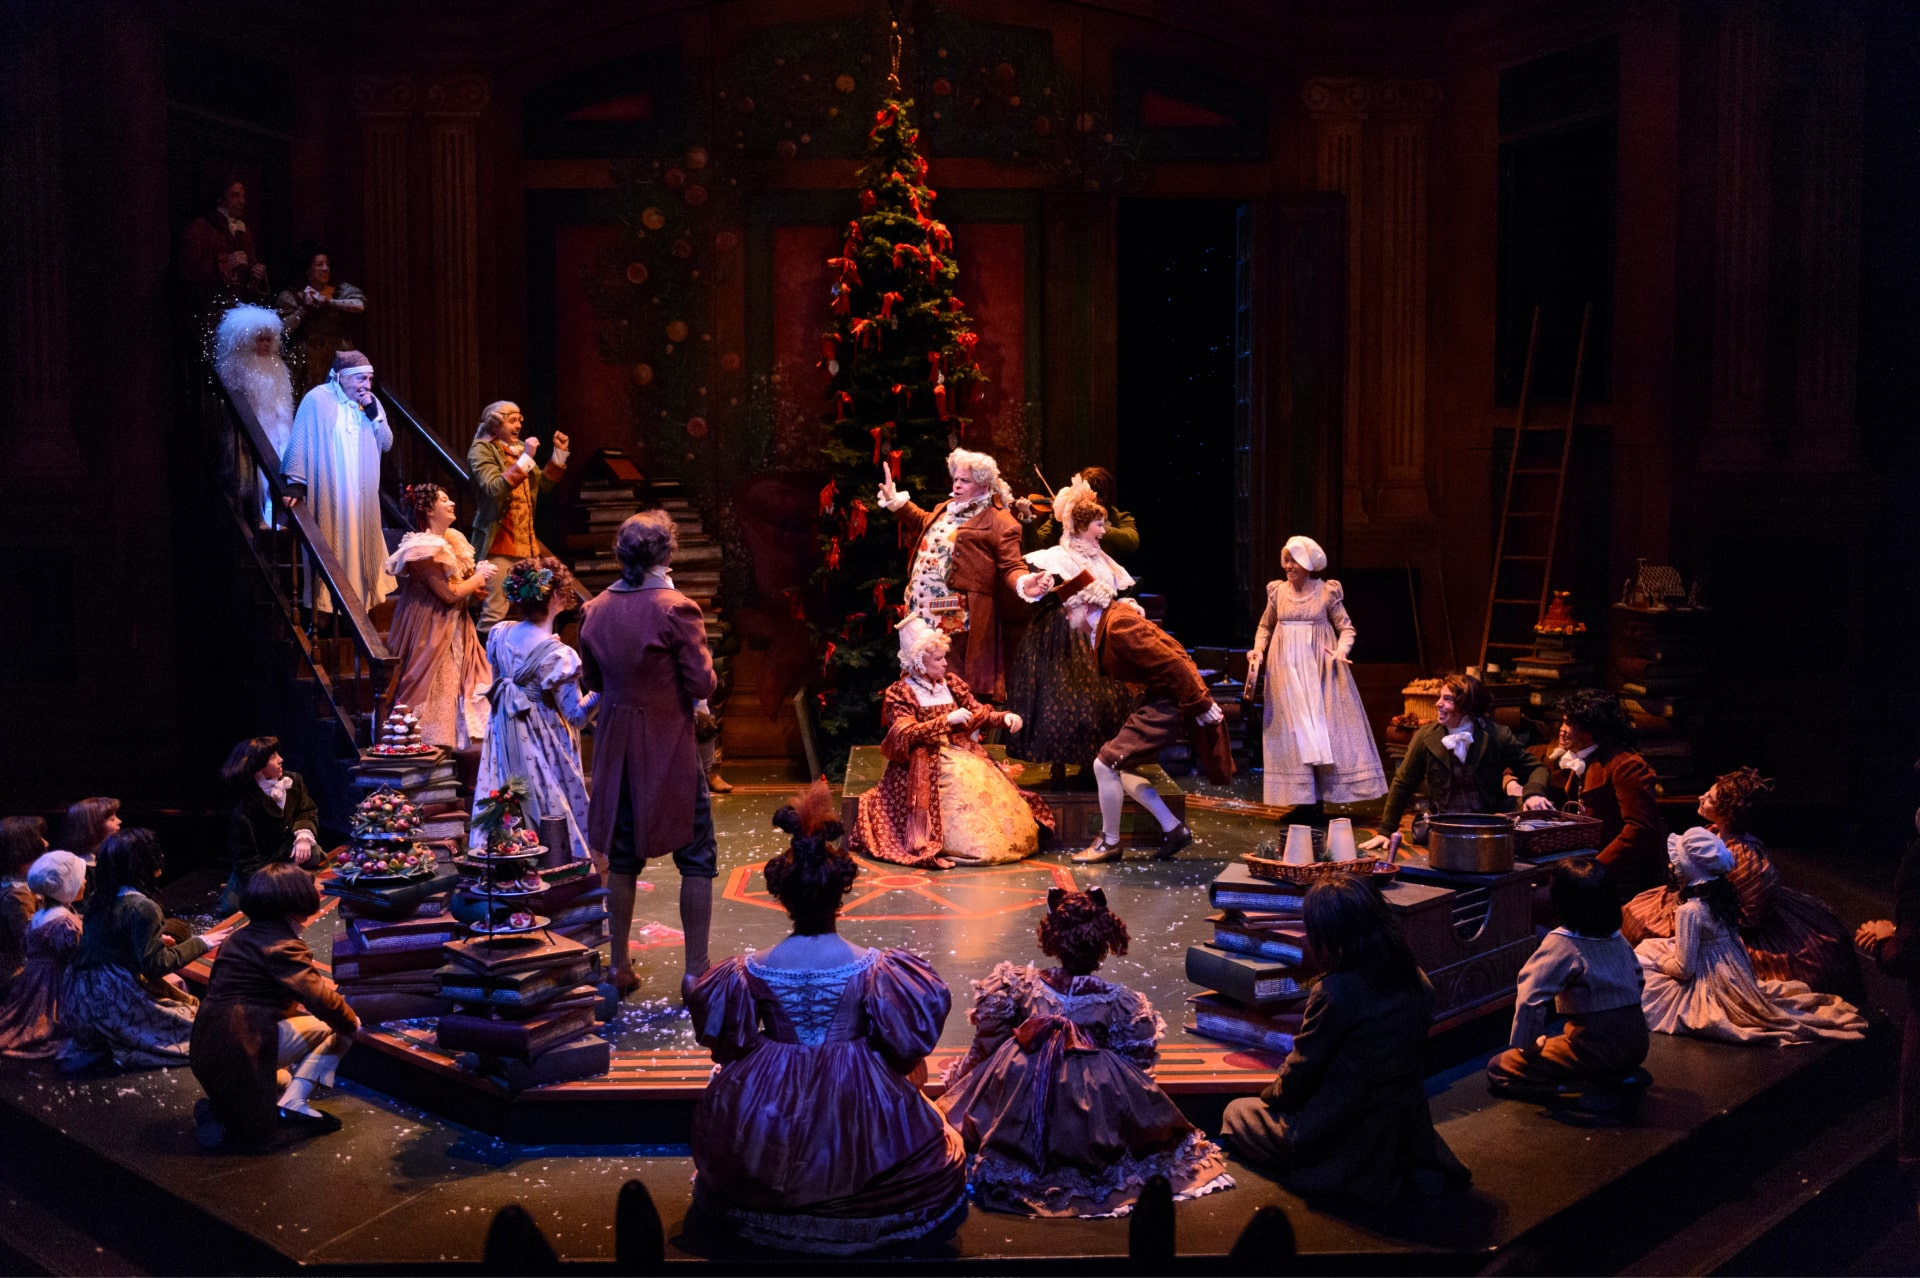 Victorian partygoers rejoice at Christmas tree in warm light.